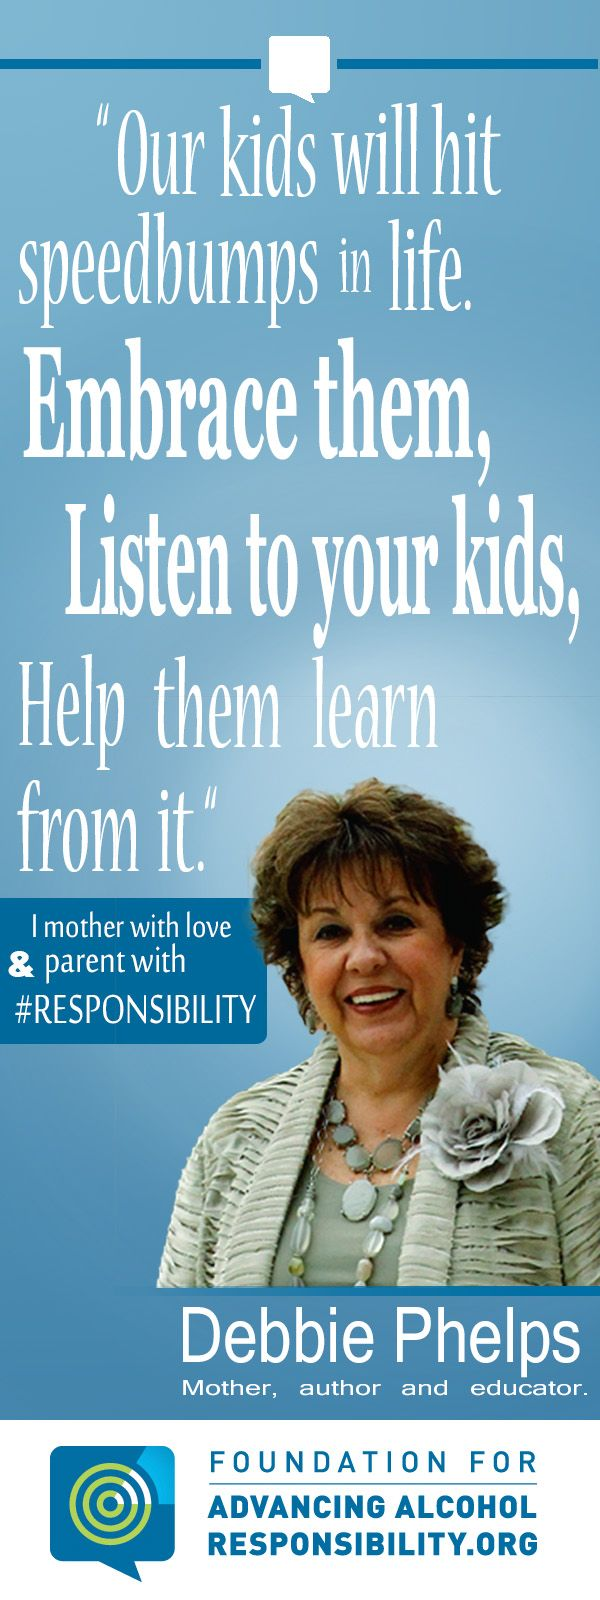 April is Alcohol Awareness Month! Author, mother and educator Debbie Phelps encourages you to have talks with your kids about alcohol #responsibility.Phelps Encouragement, Strong Mom,  Dust Jackets, Alcohol Awareness, Mom Life, Alcohol Response, Education Debbie, Debbie Phelps, Awareness Month